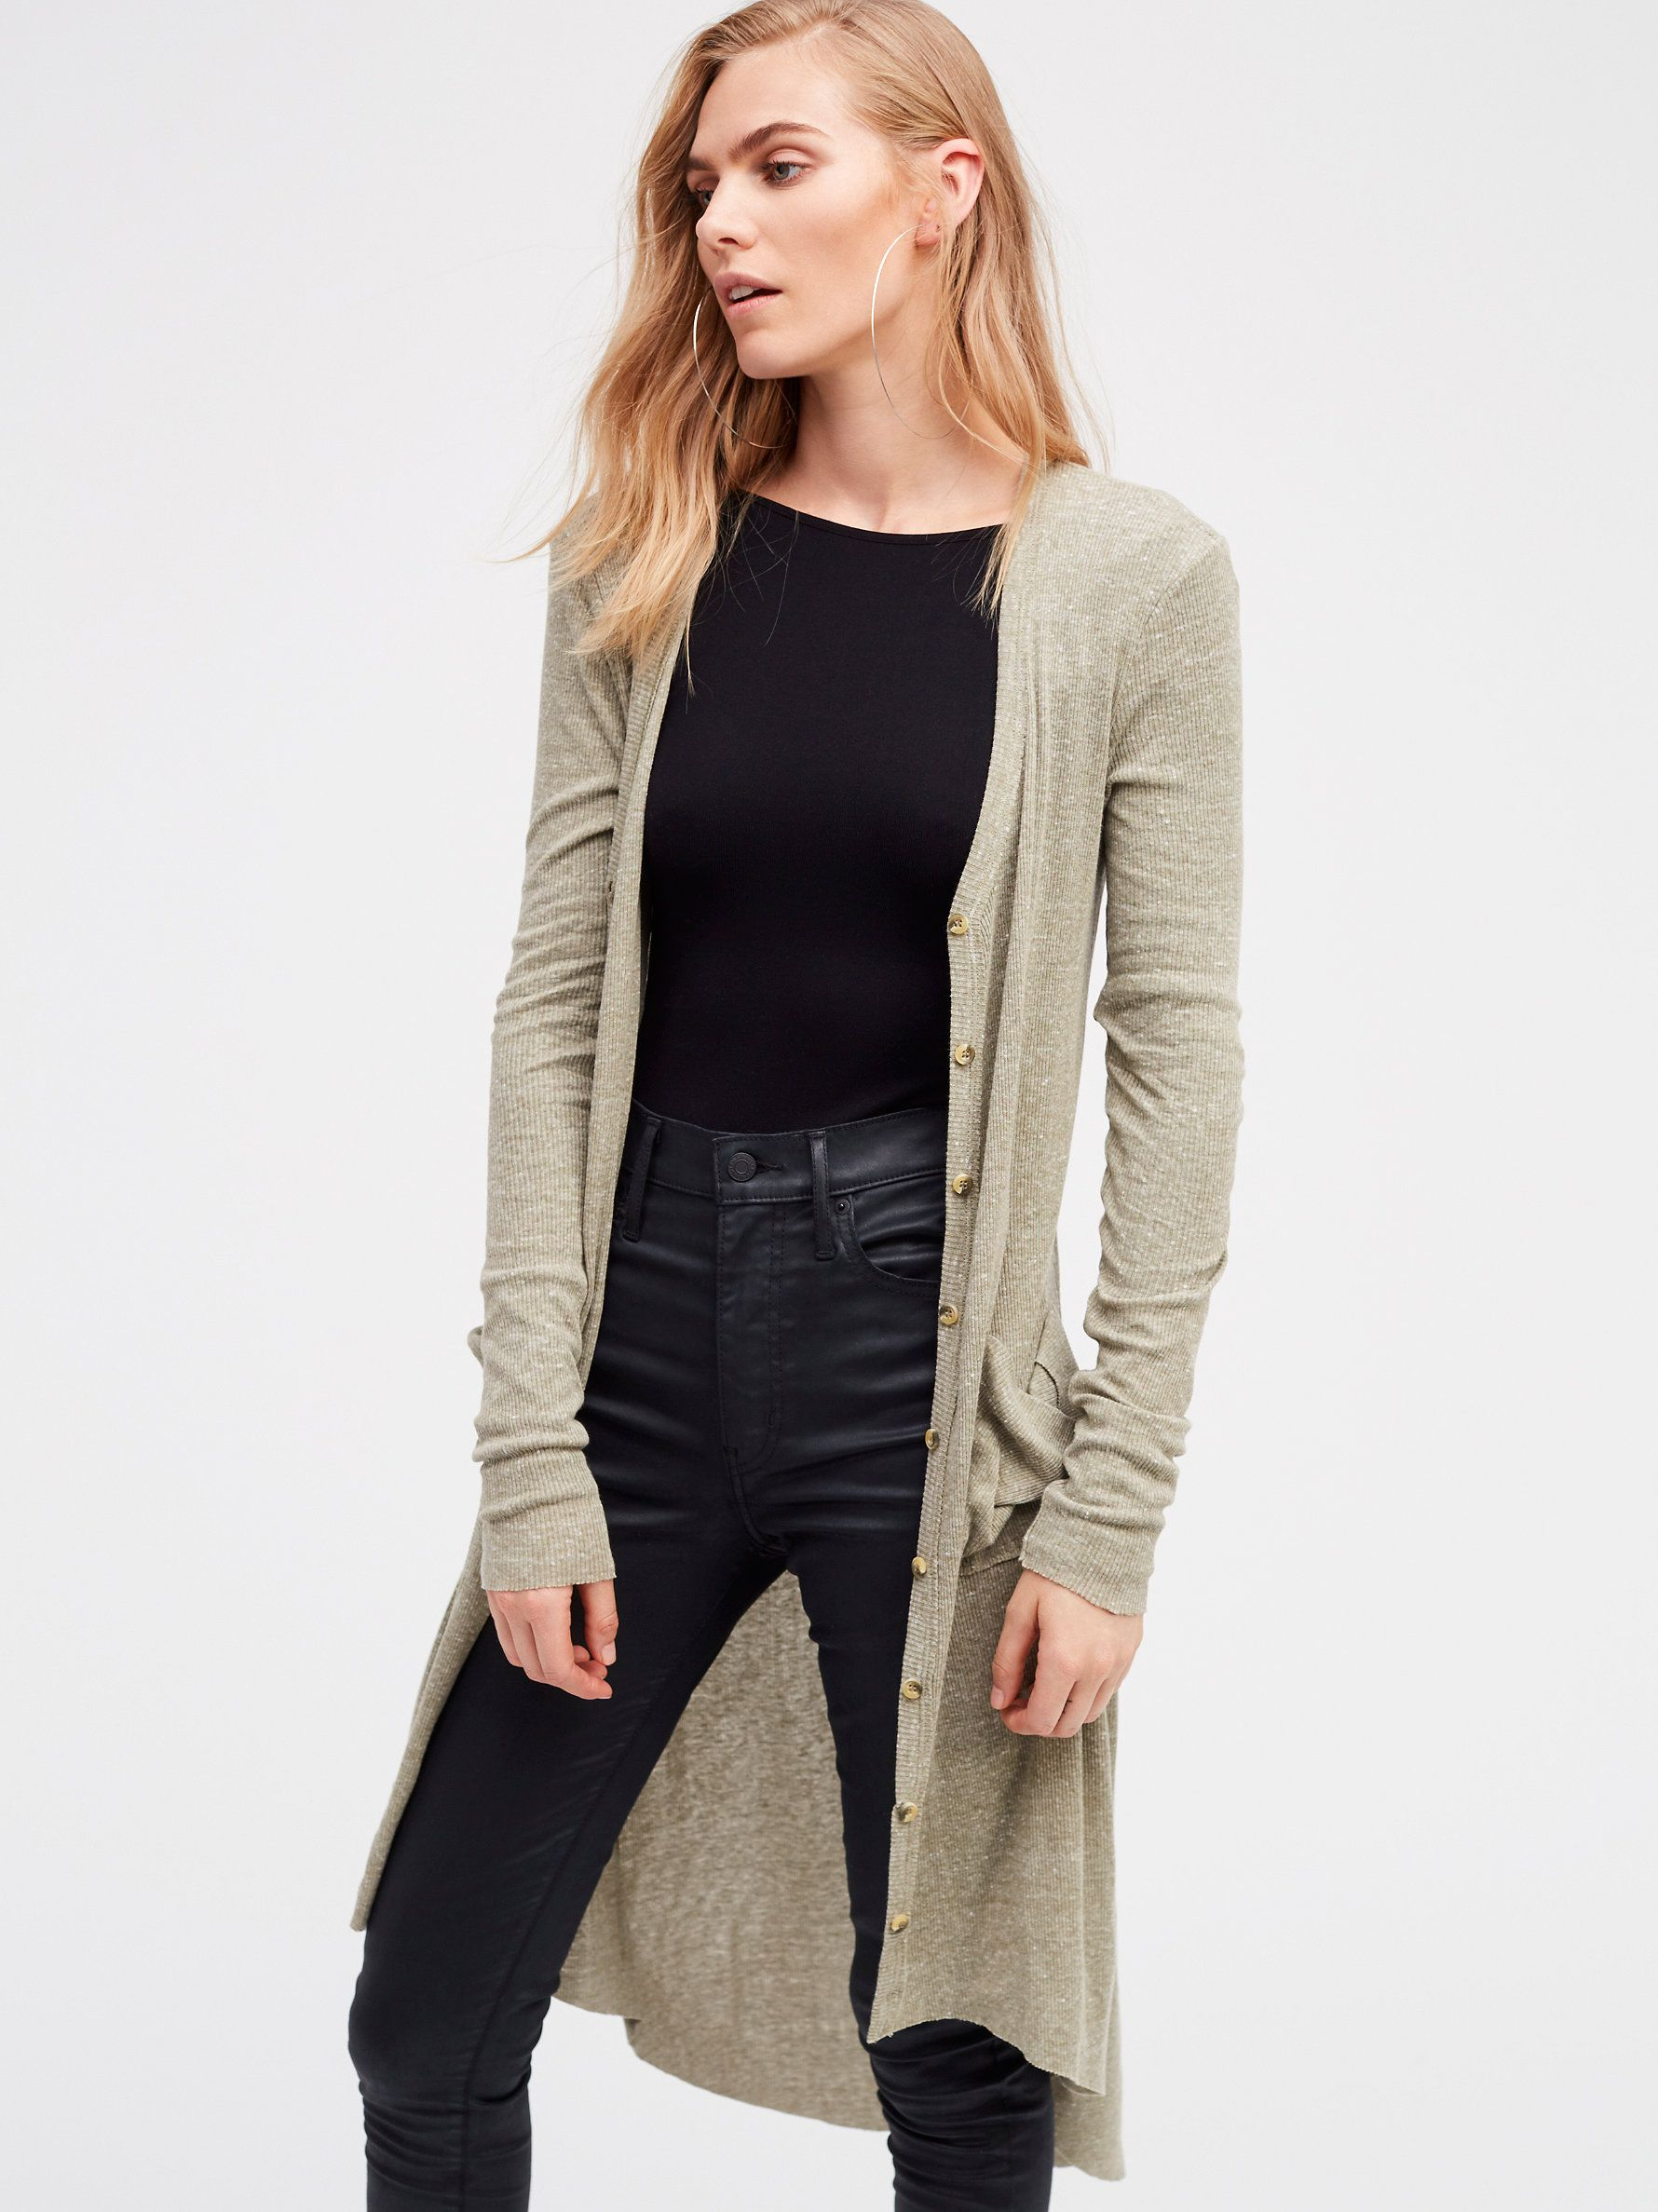 Ribbed Up Maxi Cardigan | Lightweight ribbed maxi button up v-neck ...